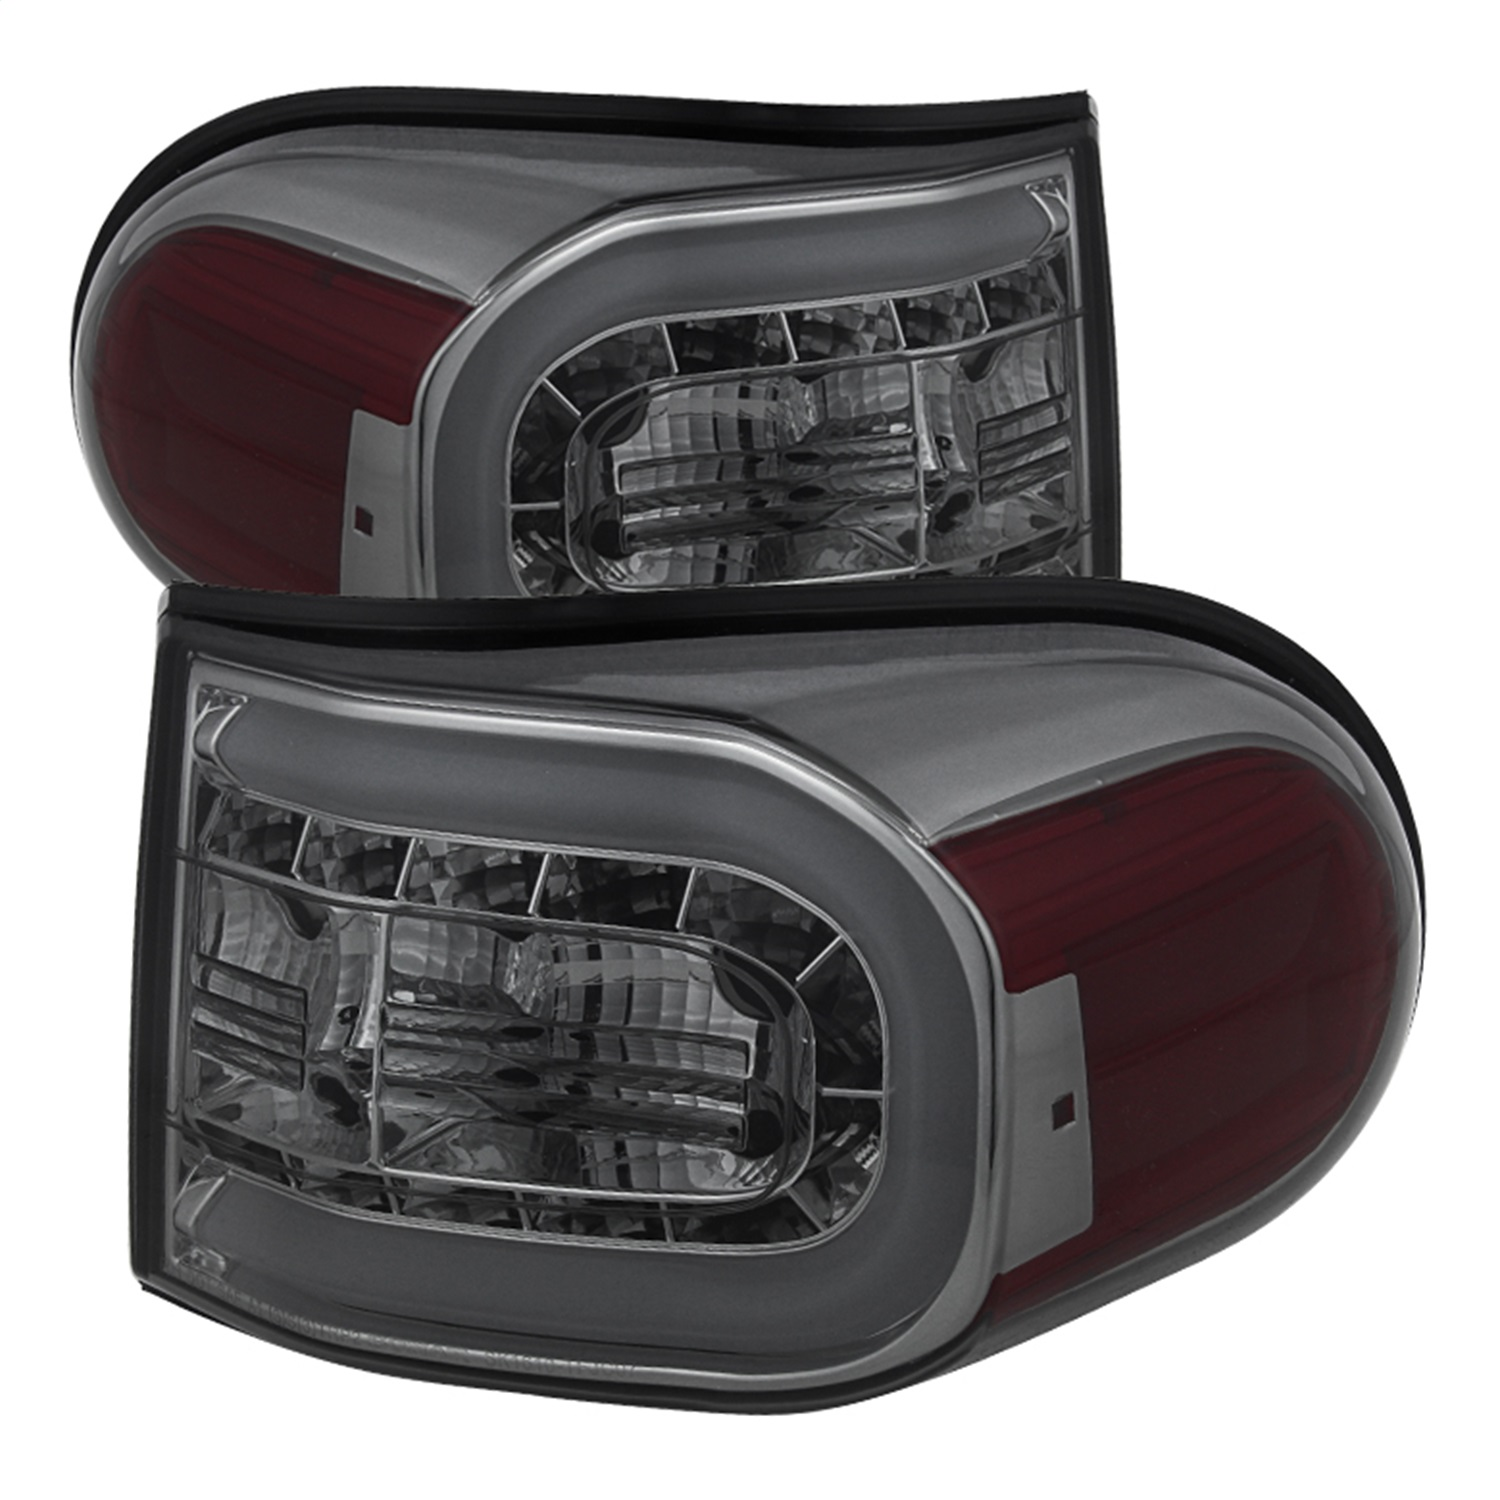 Spyder Auto 5079466 Light Bar LED Tail Lights Fits 07-13 FJ Cruiser